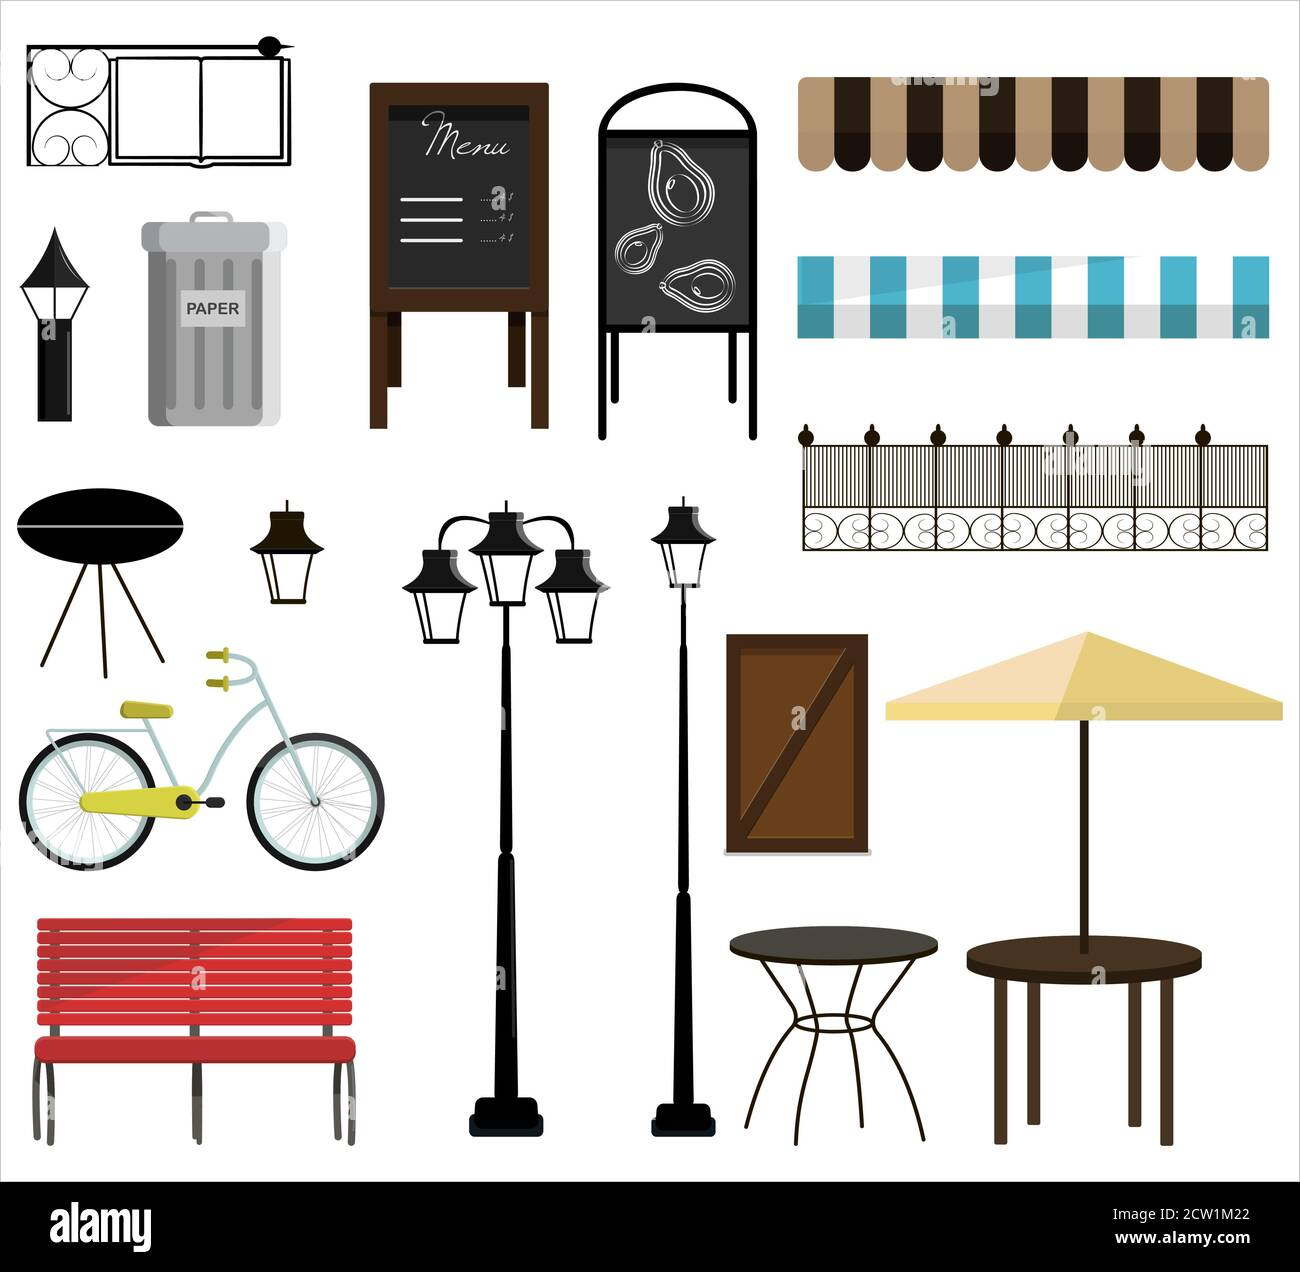 A set of vector items for street, Park or garden design. Bench, bicycles, fence, awnings, street lamps, garden furniture, trash cans, chimney, and signs for decorating a house, store, or building. Flat design illustration with isolated street objects on a white background. Stock Vector